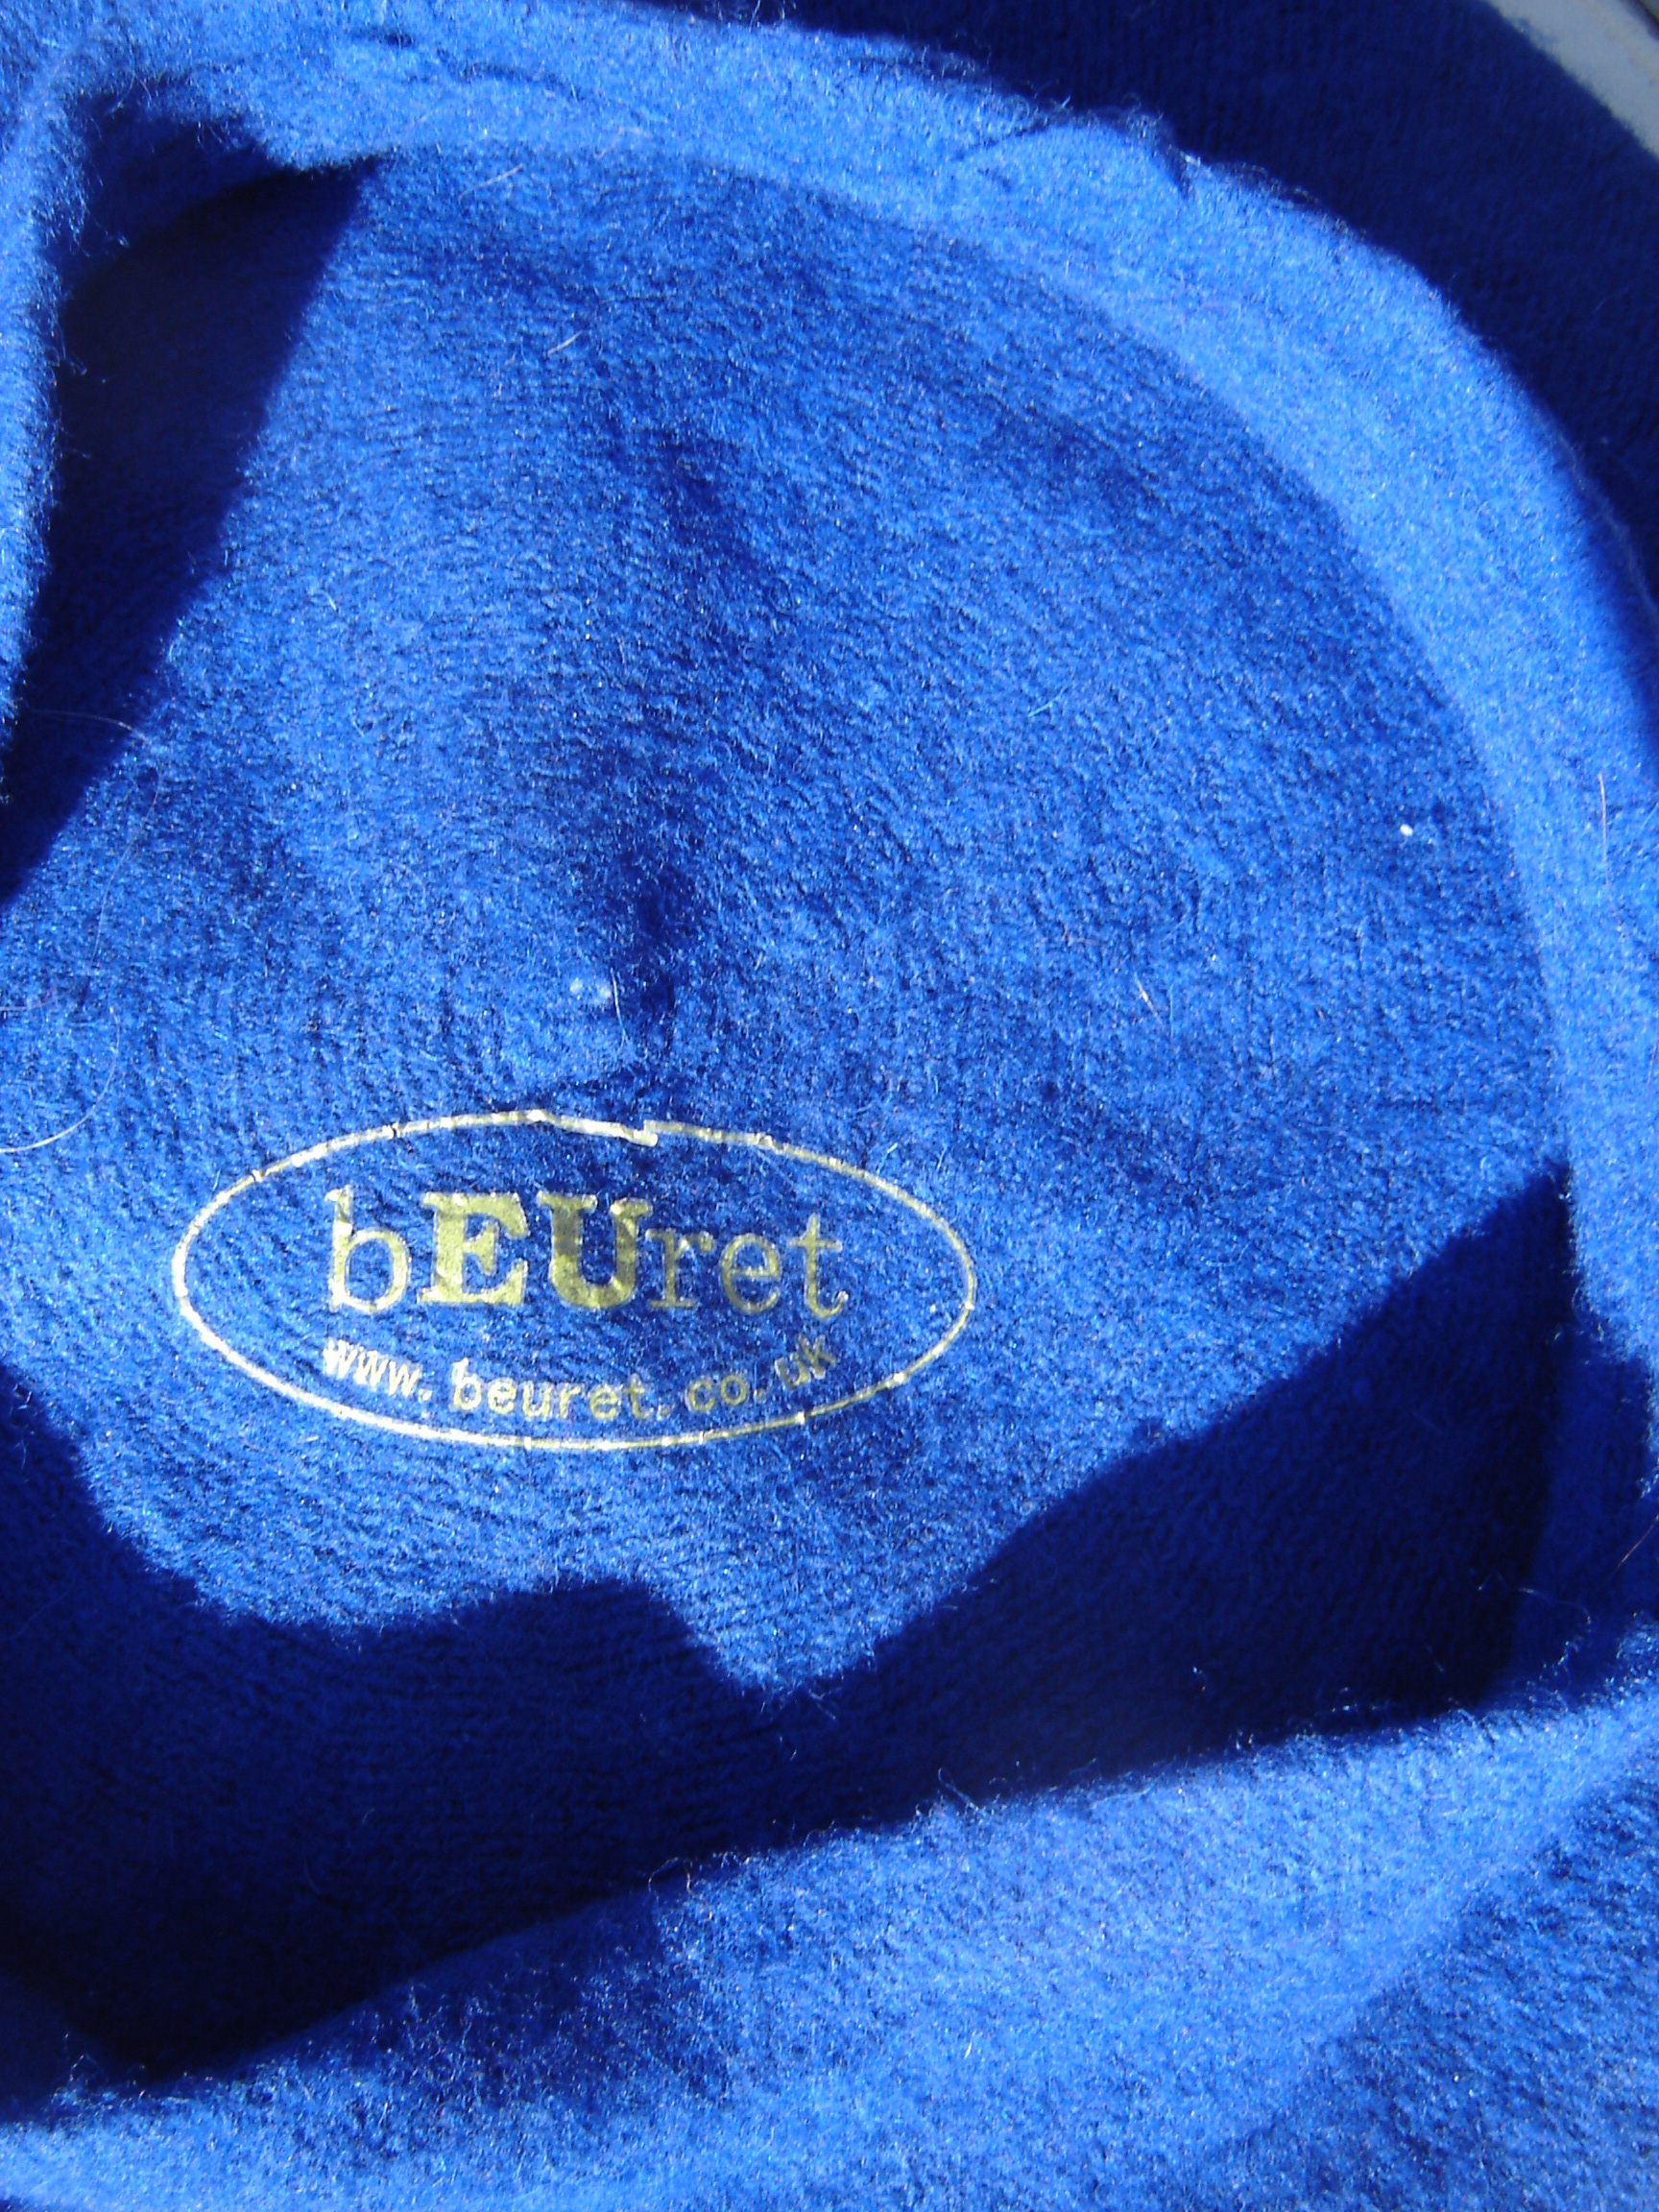 Dark blue EU beret with yellow stars